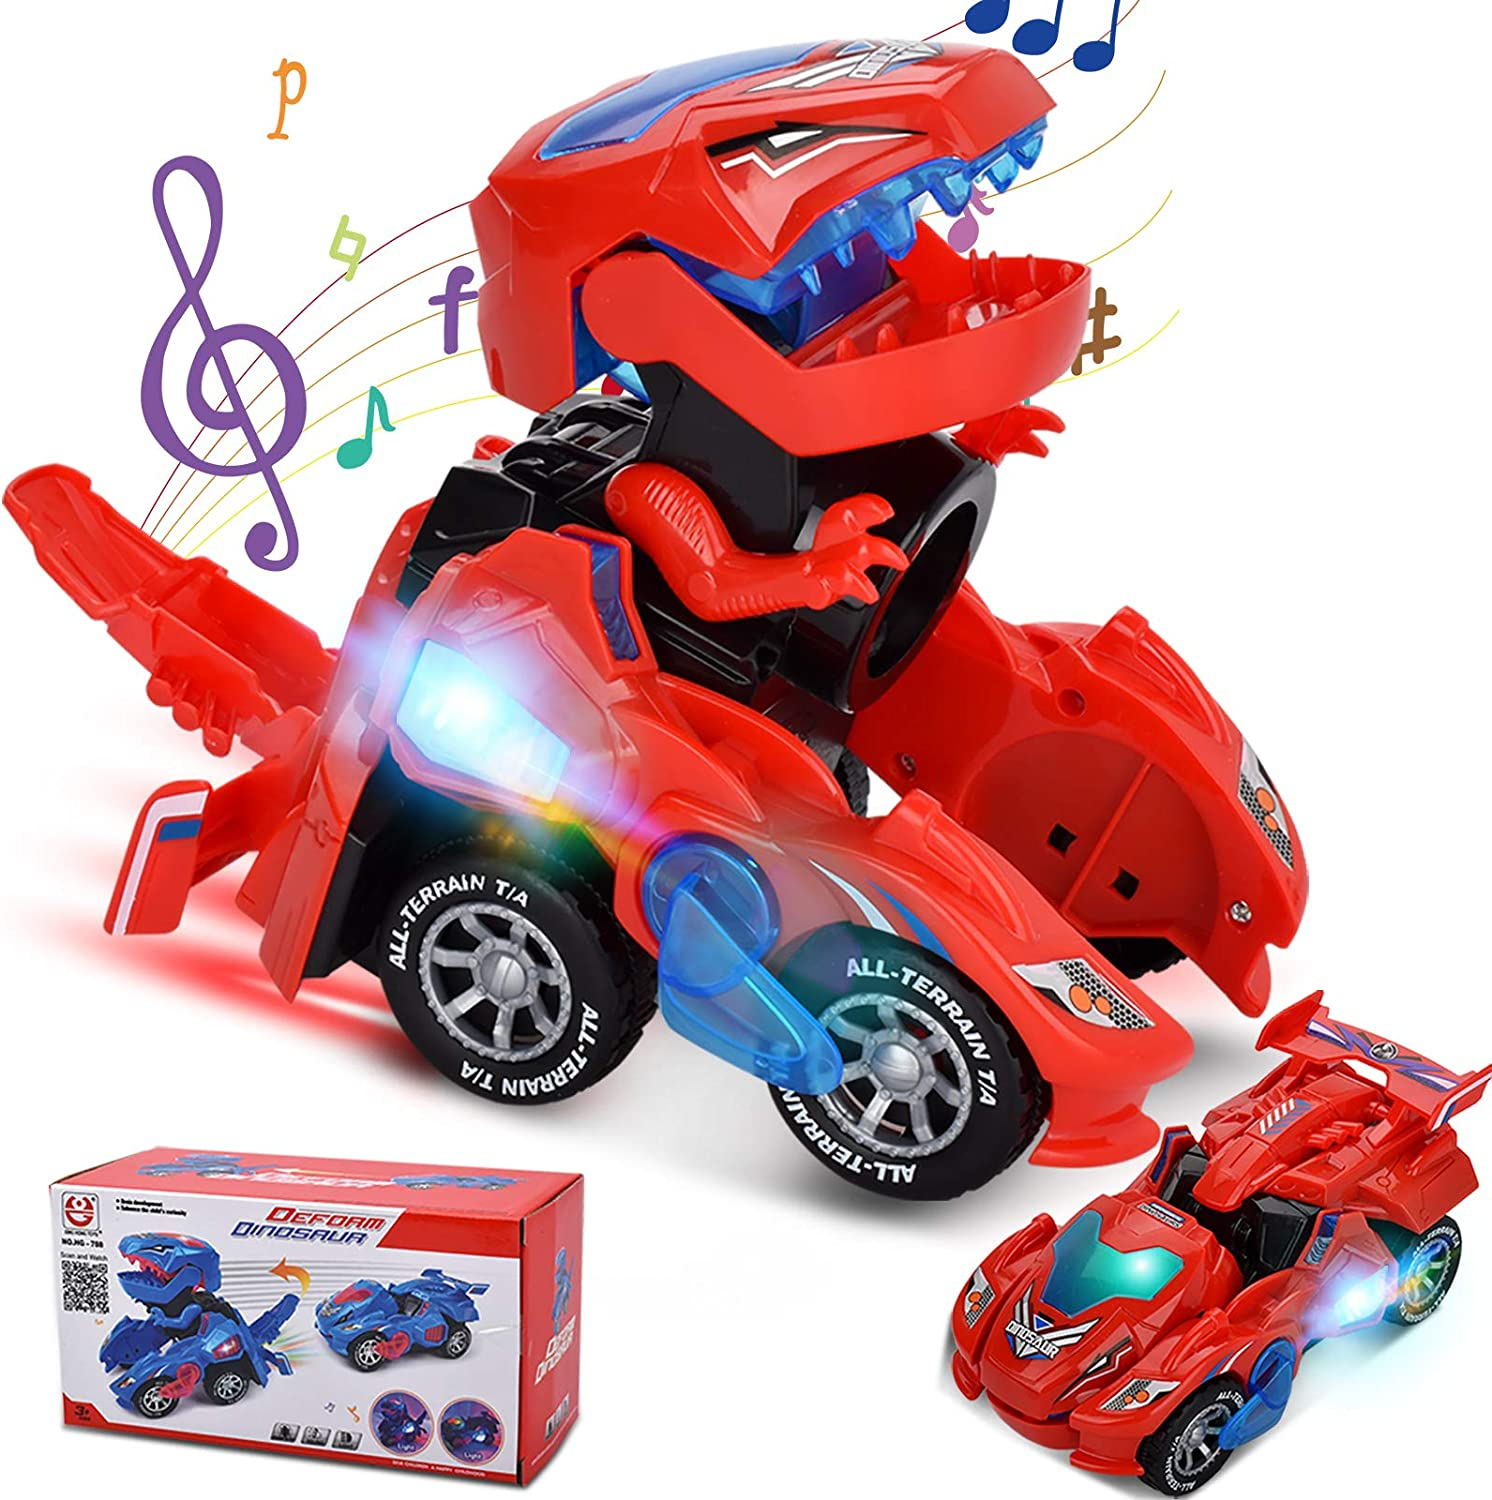 Year Old Kids Boy Girls Birthday Gifts Transforming Dinosaur Car with LED Light and Music Automatic Transform Dino Car Toys for 3 SEANBO Transforming Dinosaur Toys